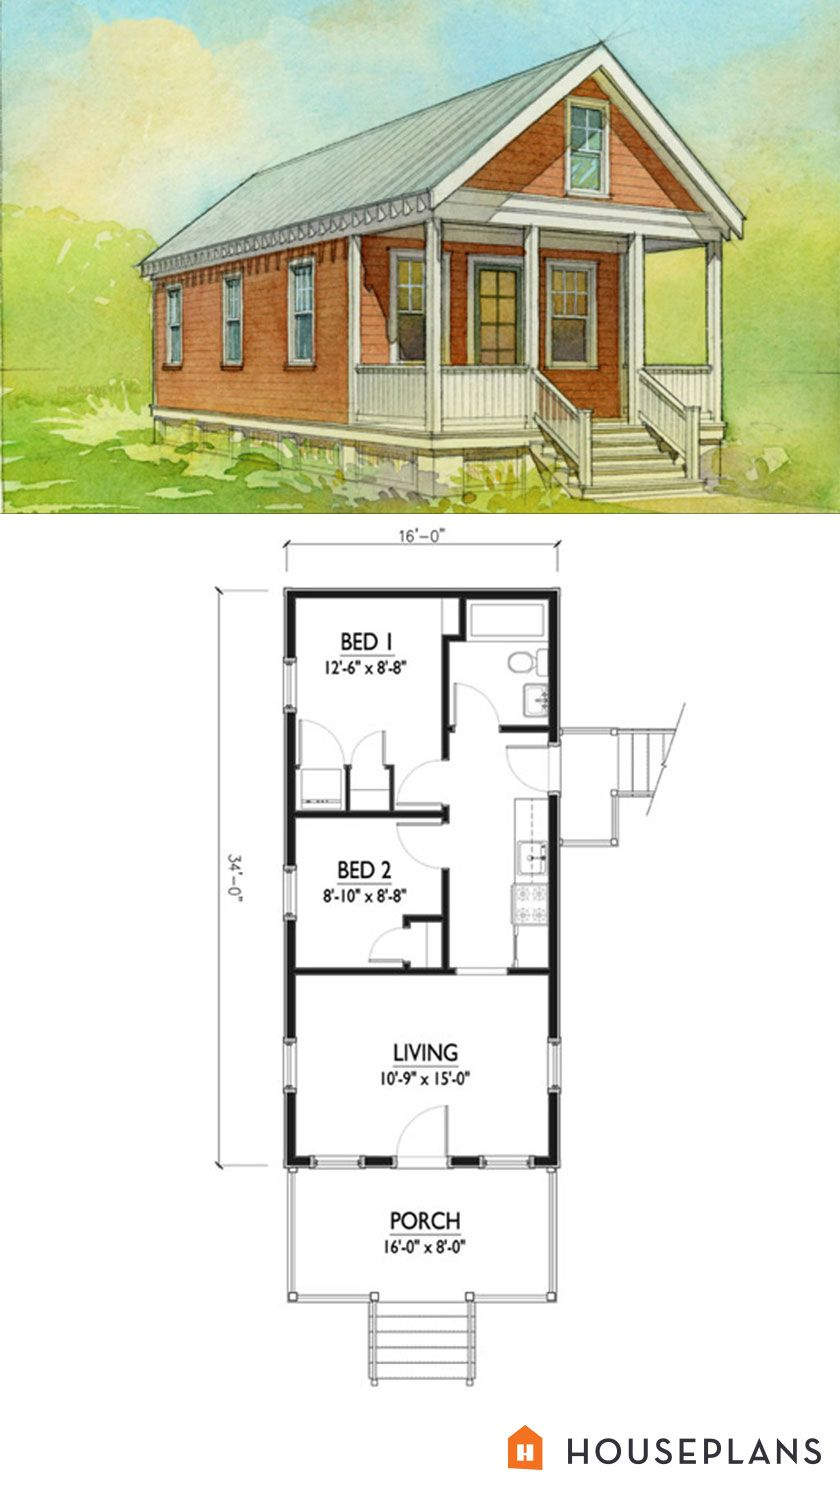 Small katrina cottage house plan 500sft 2br 1 bath by for Small cottage plans